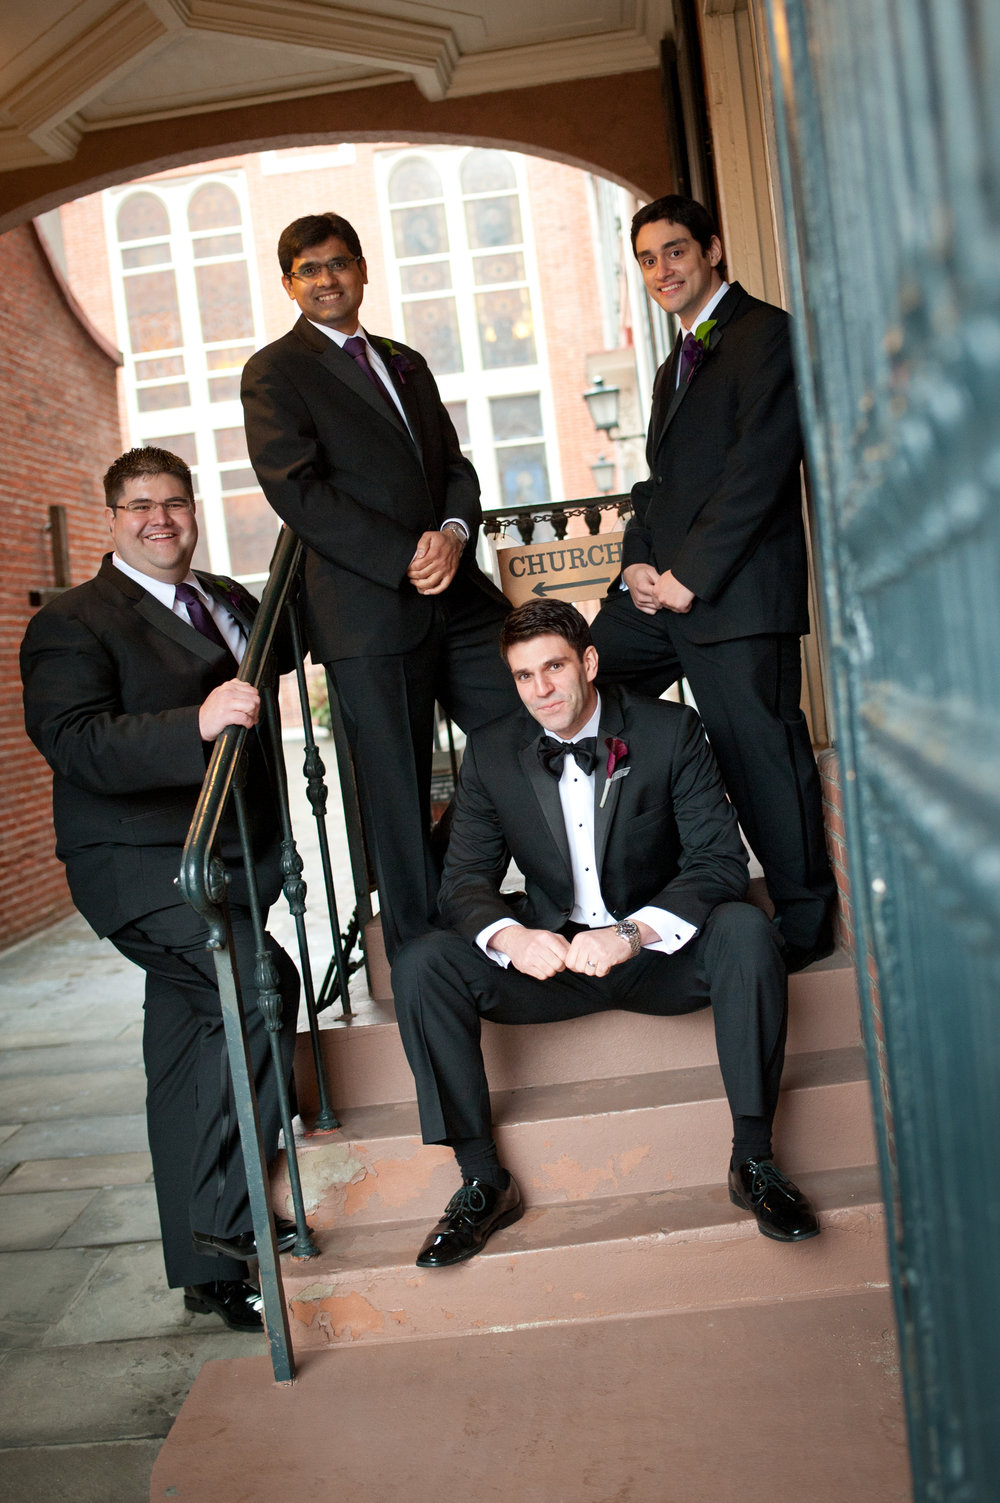 24 Winter Wedding Philadelphia Groomsmen.JPG